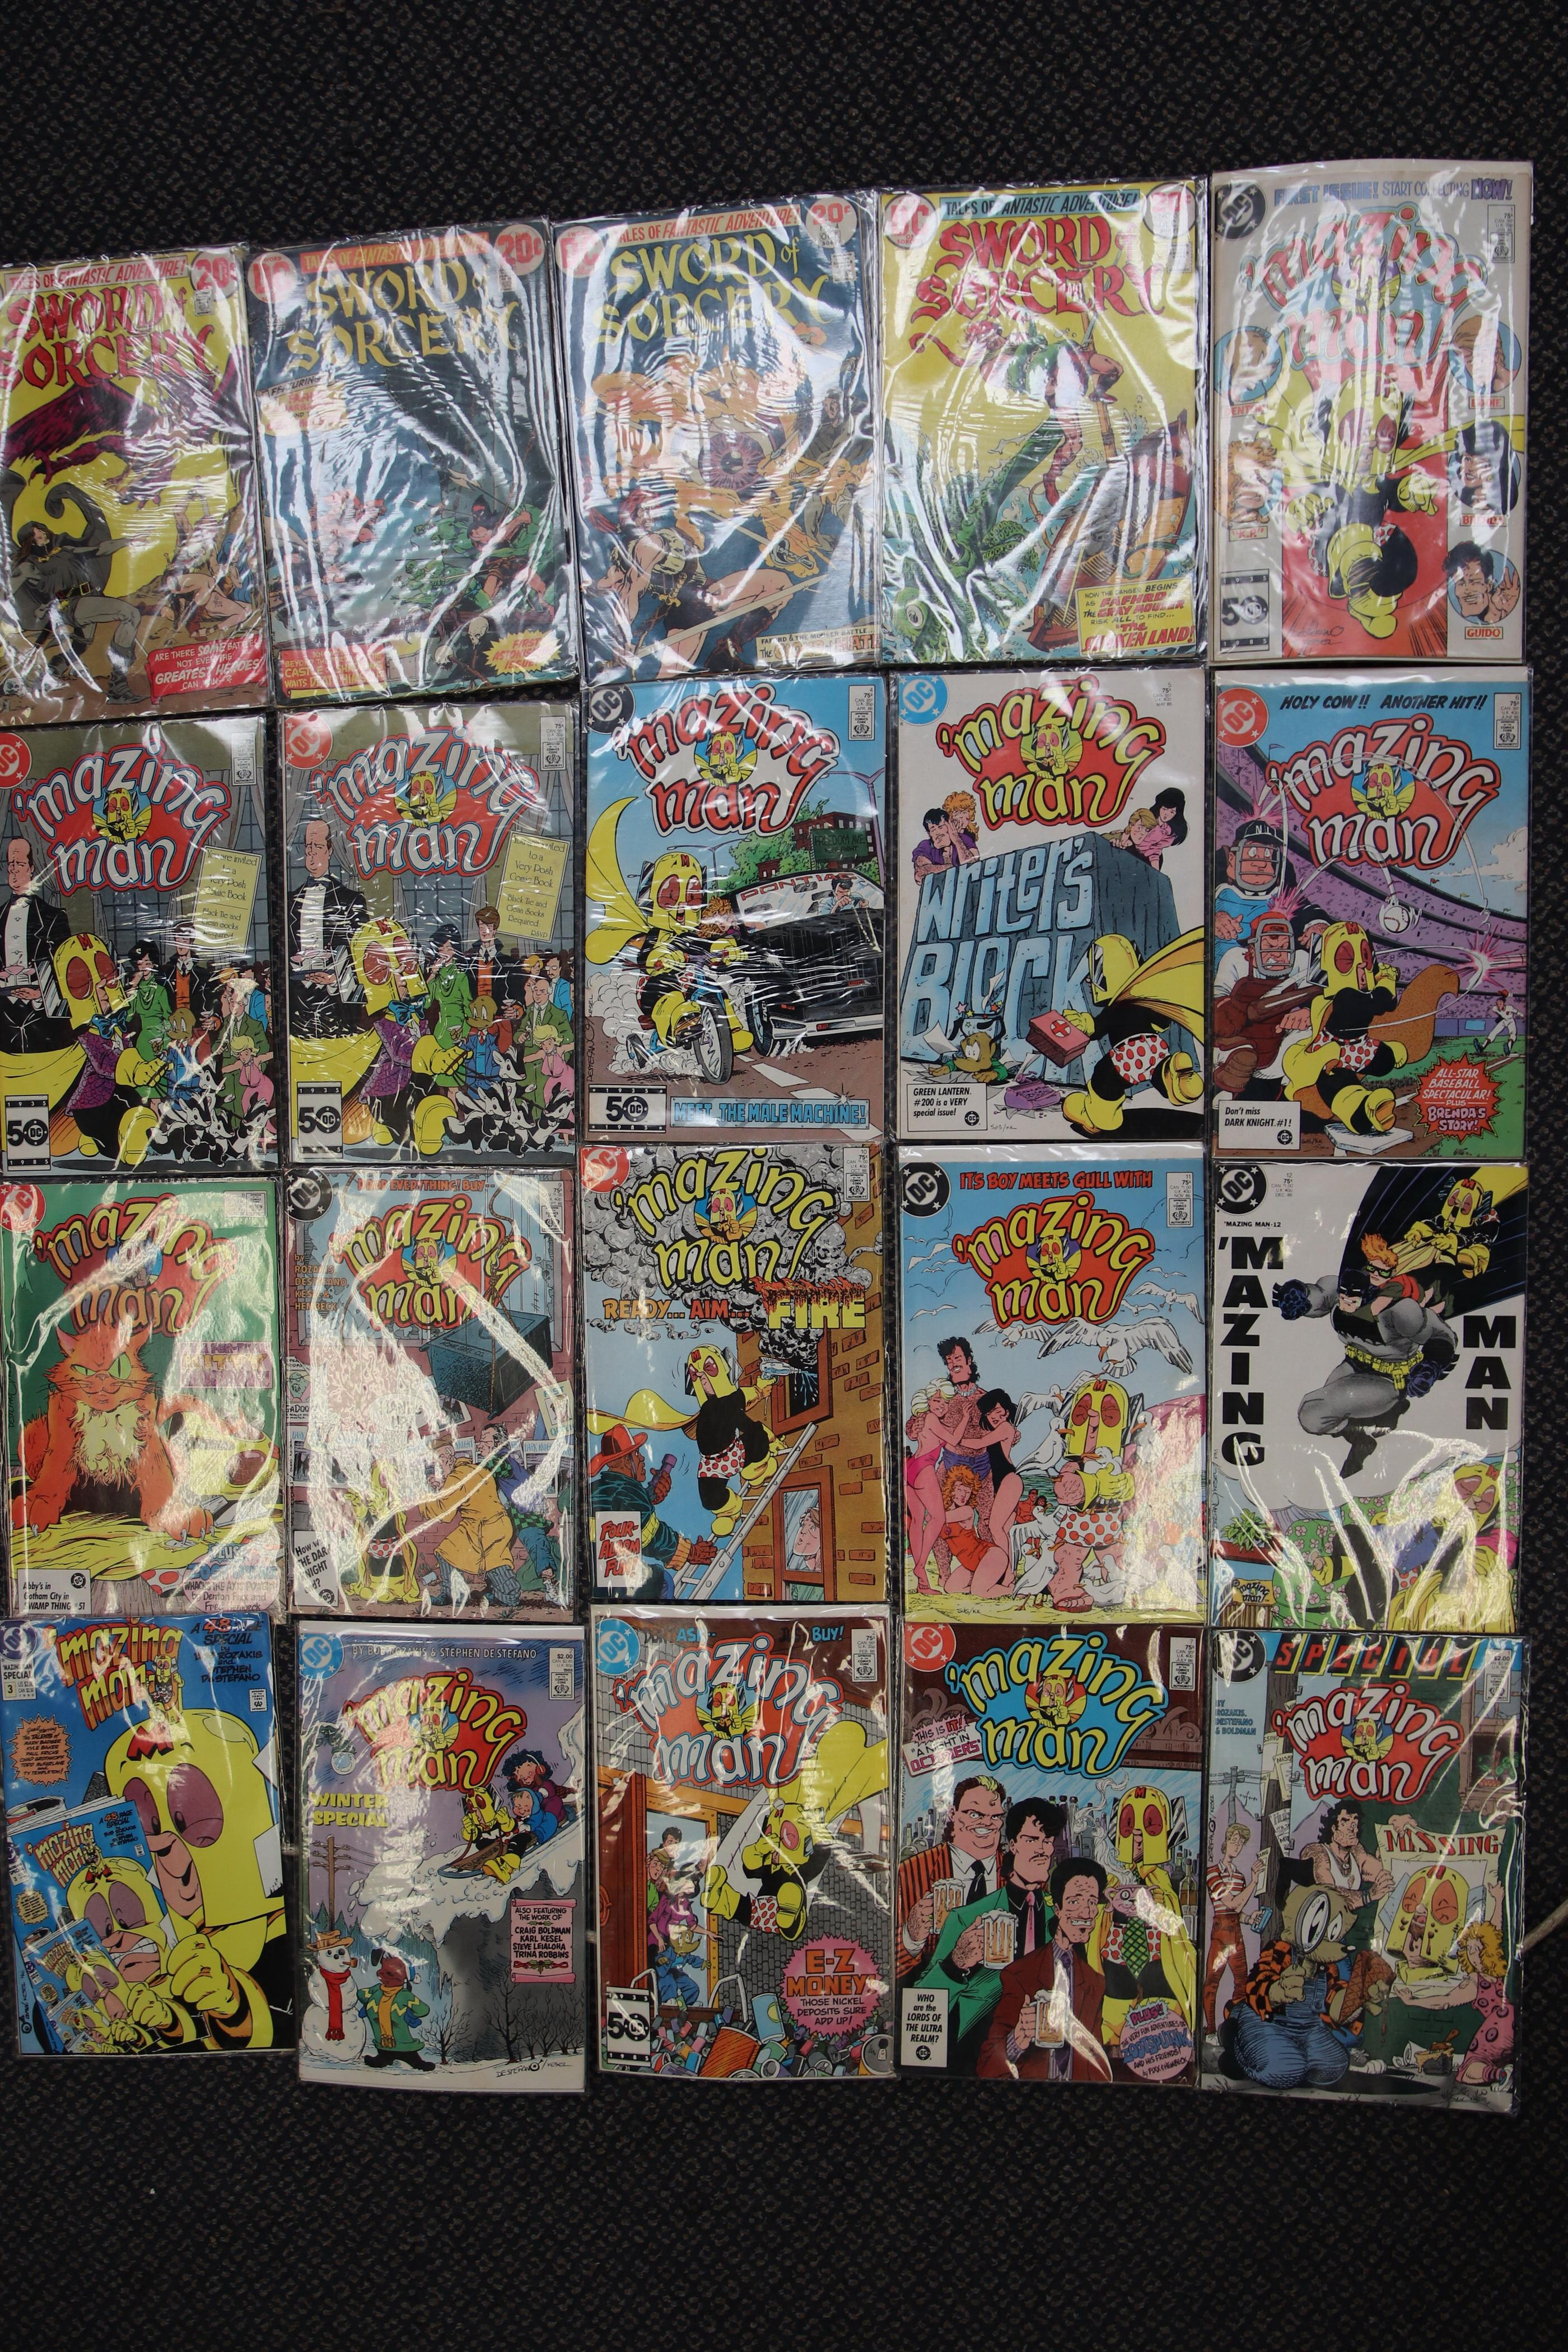 SELECTION OF DC COMICS MAZING MAN & SWORD SORCERY 20 IN TOTAL